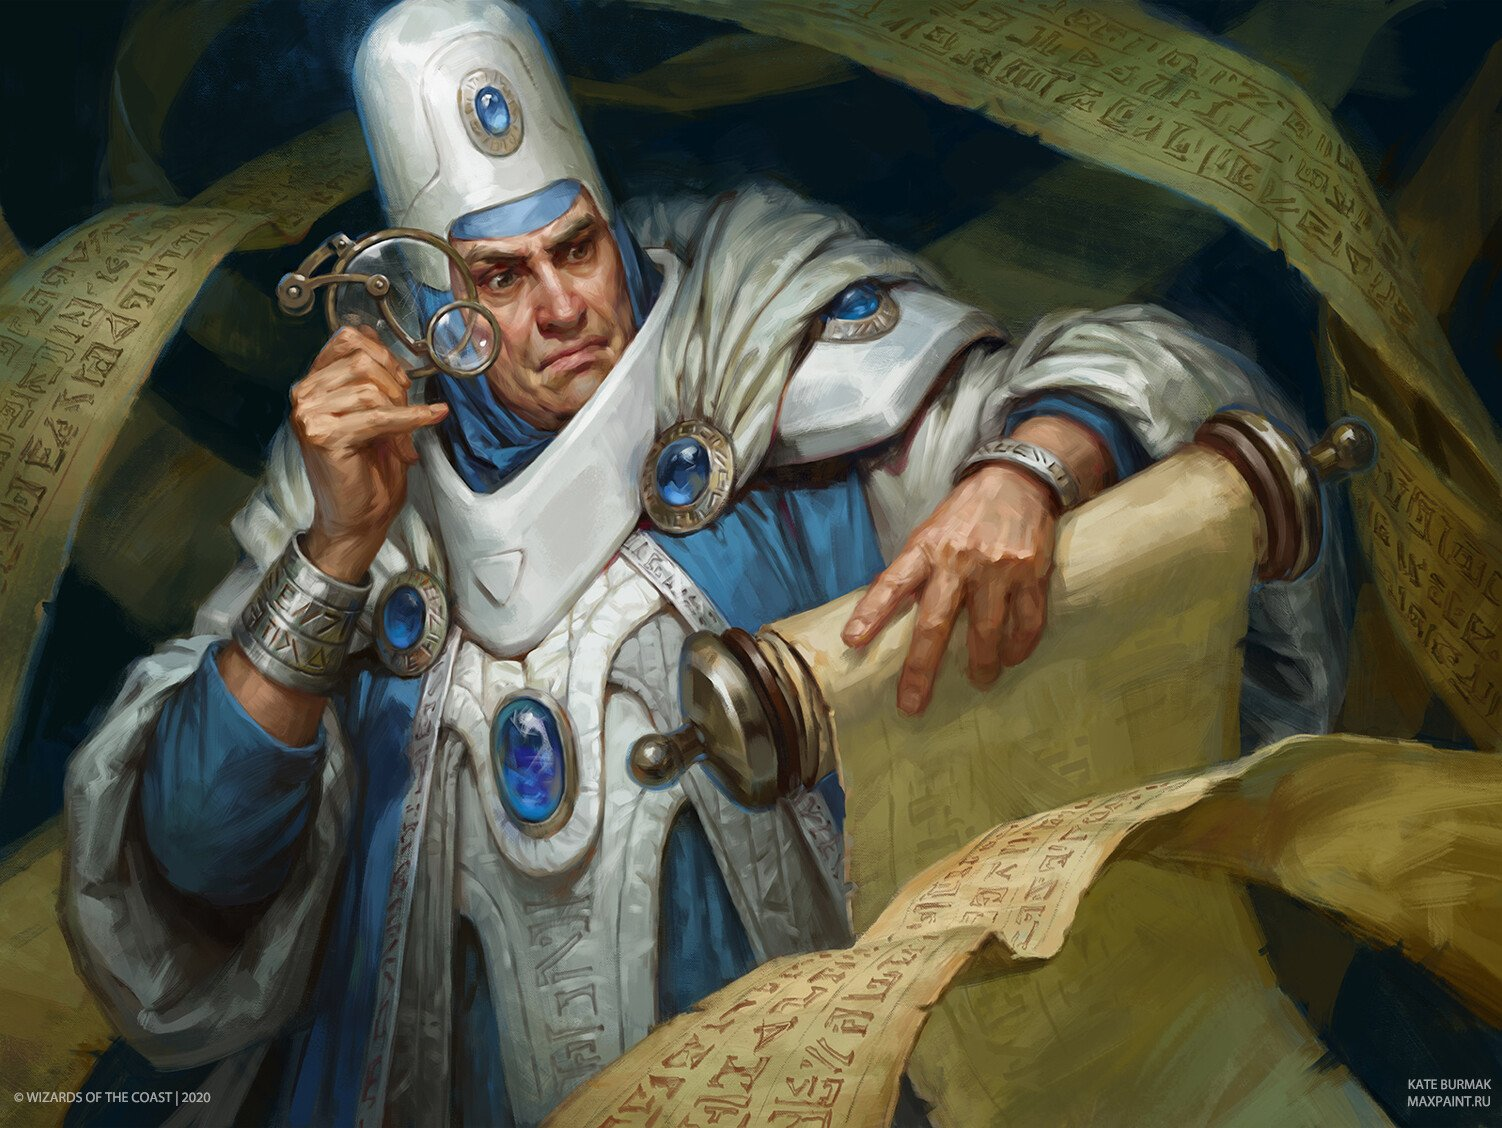 Tasha's Cauldron Of Everything: Order of Scribes Wizard Receives Feeble Reprint In D&D's Newest Rules Expansion